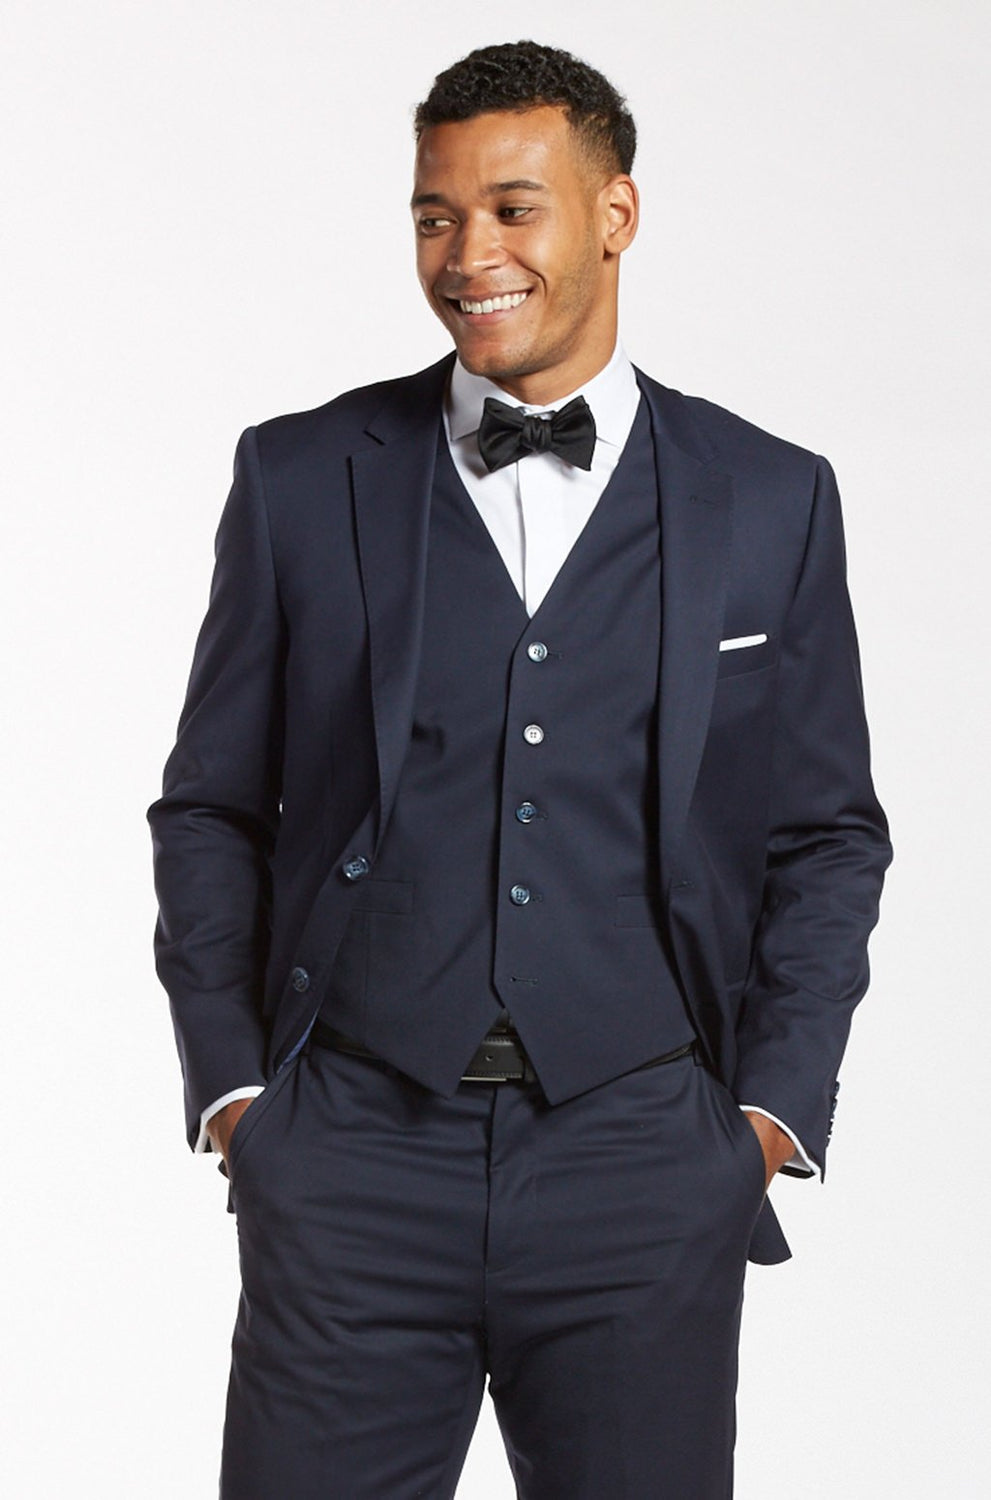 Navy Blue Three Piece Suit For Grooms